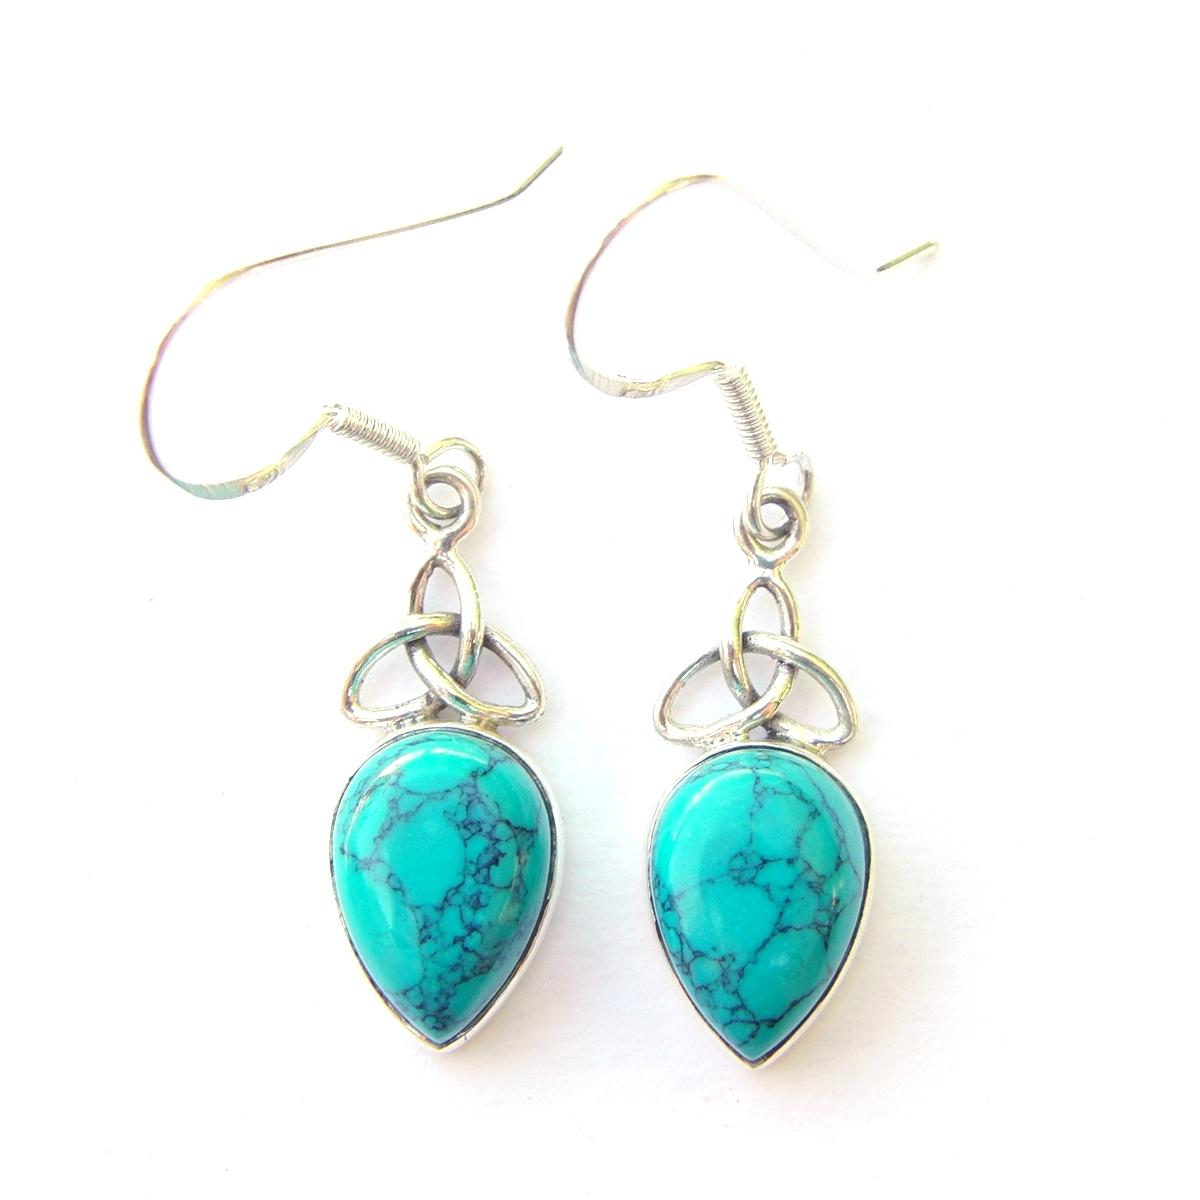 Turquoise Triquetra Earrings